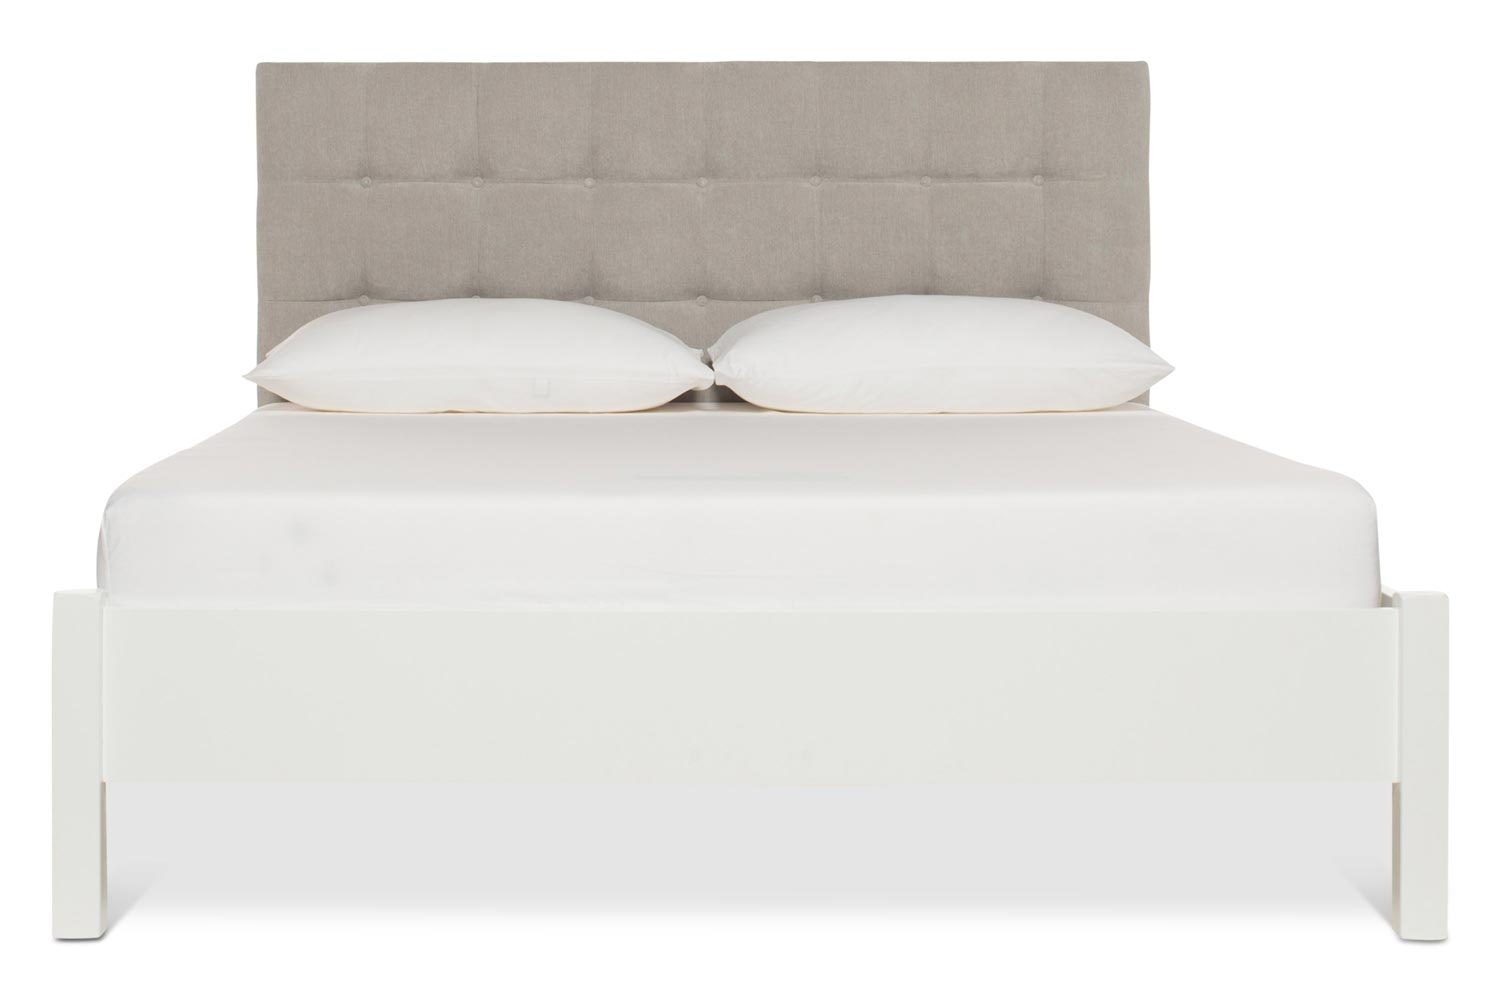 Emily Loft White Bed Frame | 6FT | Portman Headboard Silver